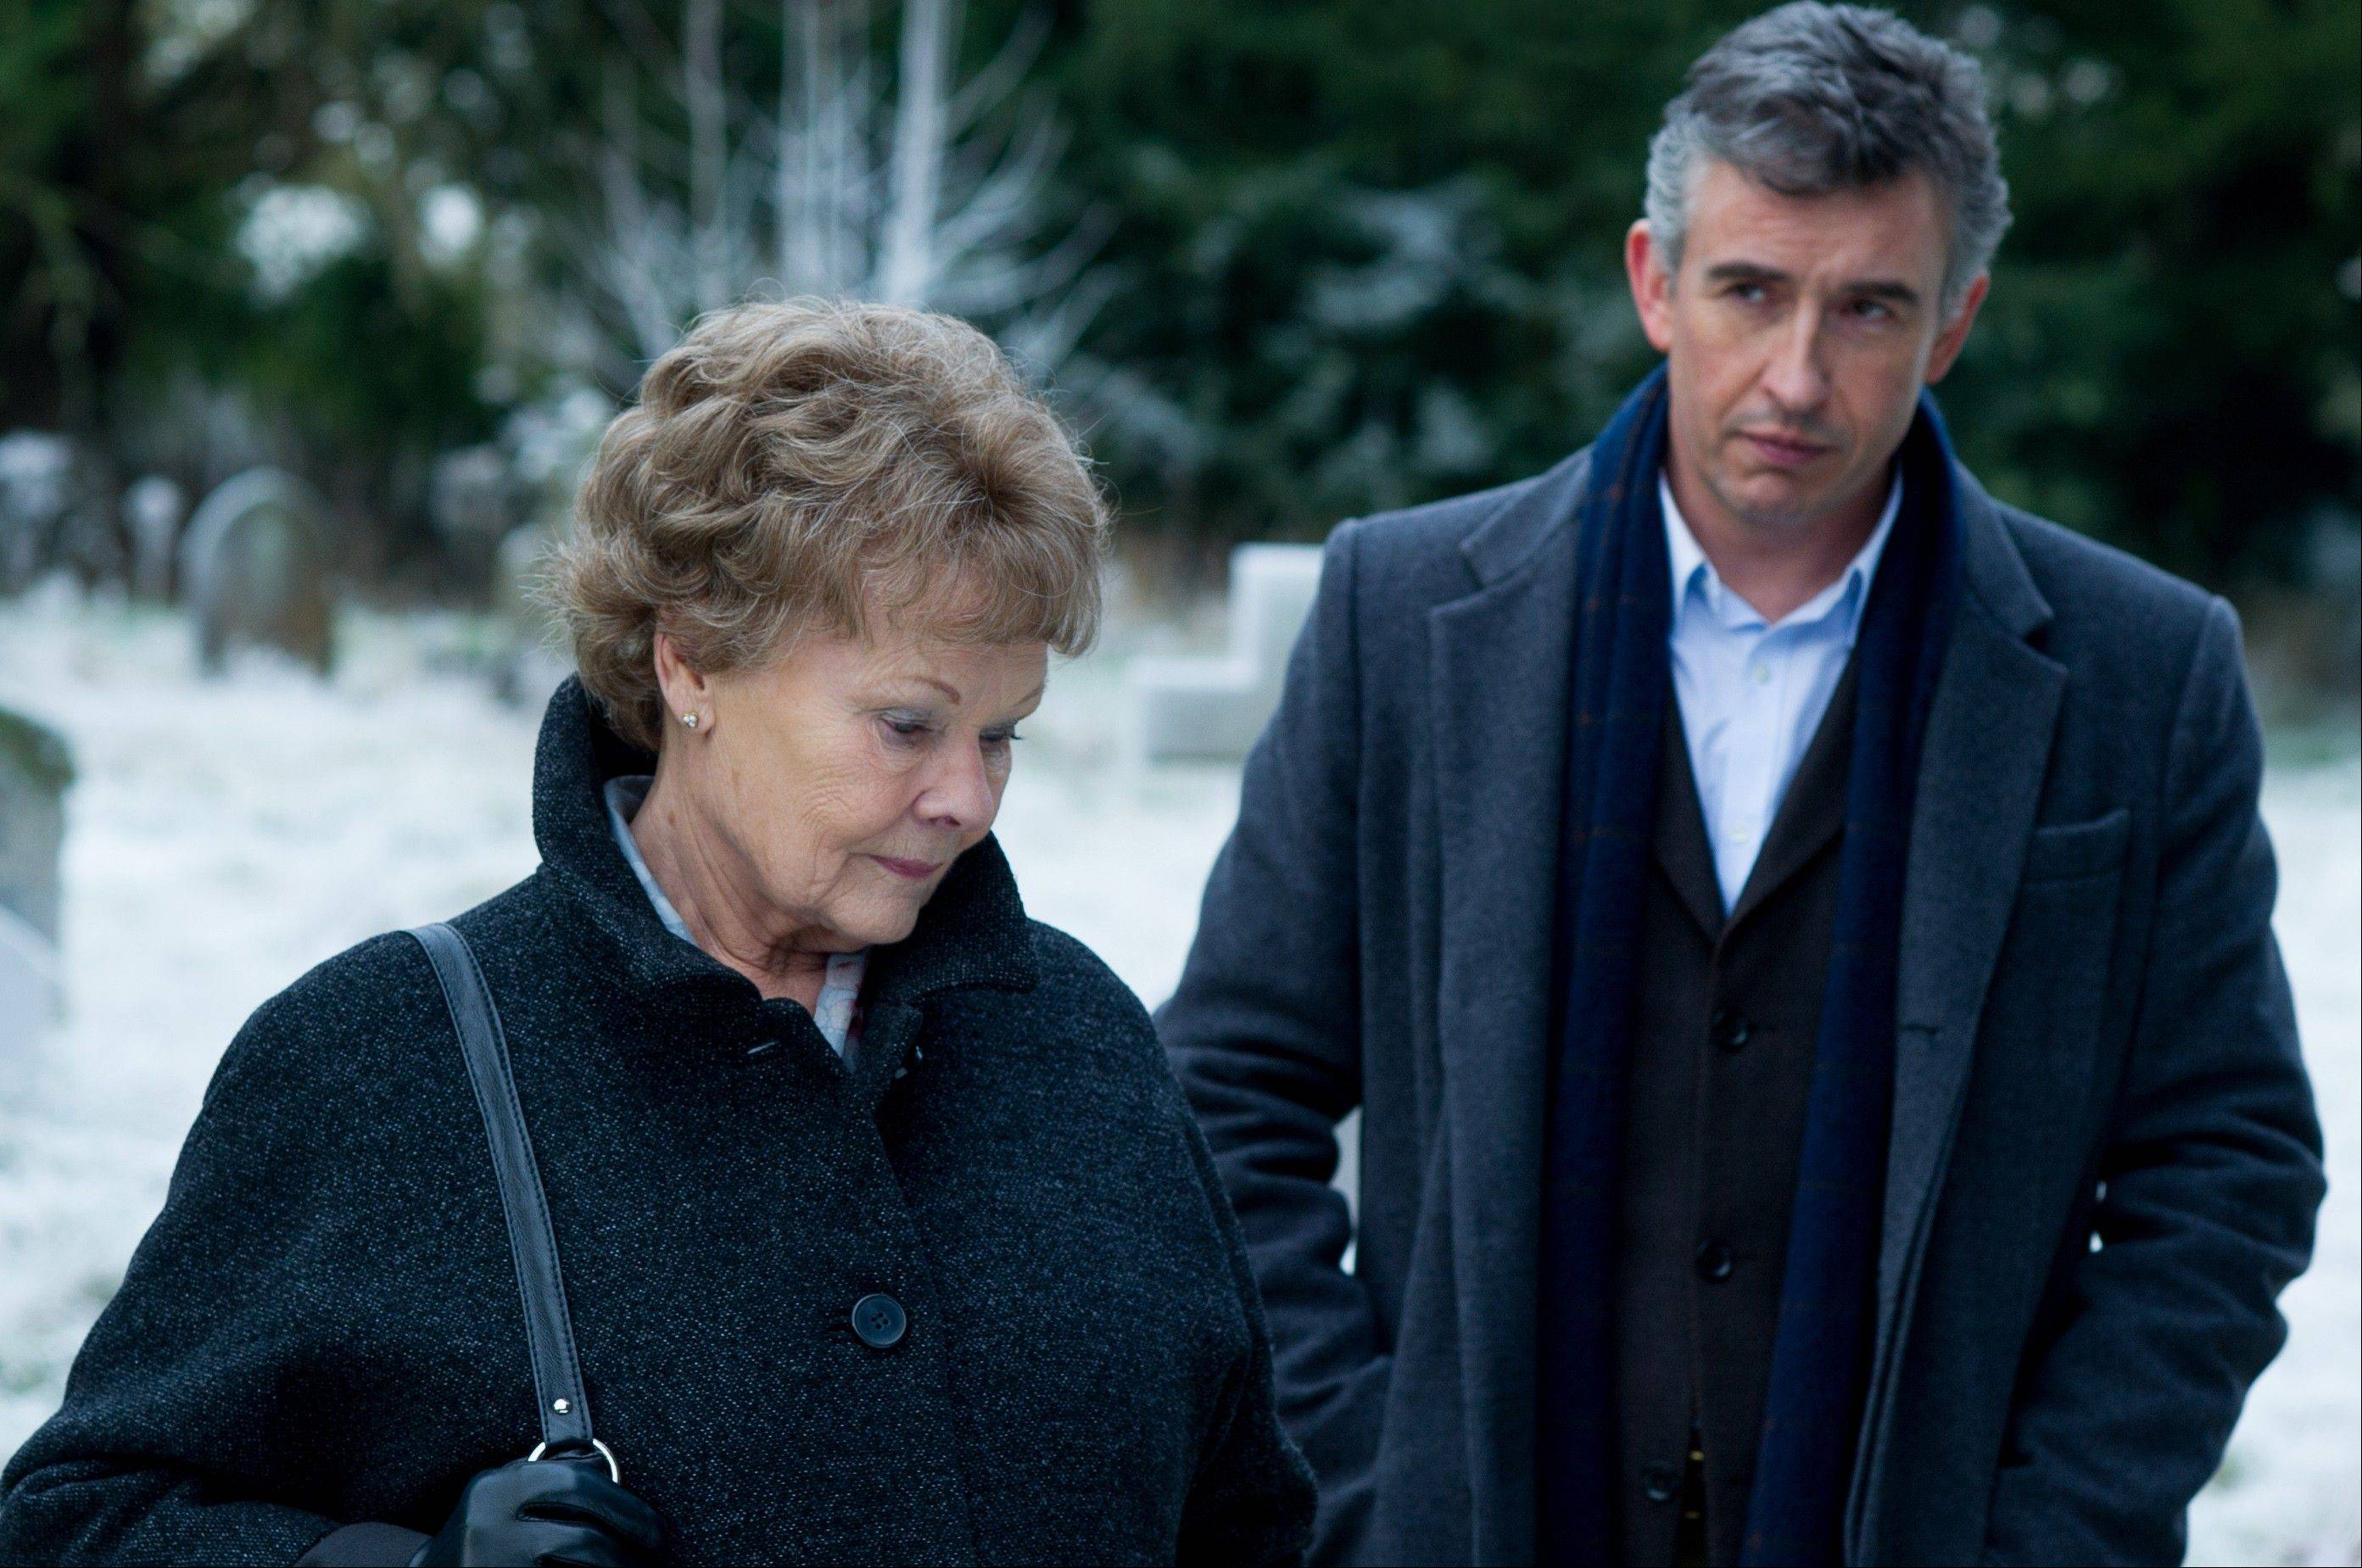 Judi Dench, left, and Steve Coogan in �Philomena.� The British comic and Oscar-winning actress co-star in the film, which explores the benefits and costs of faith through the true story of Philomena Lee.